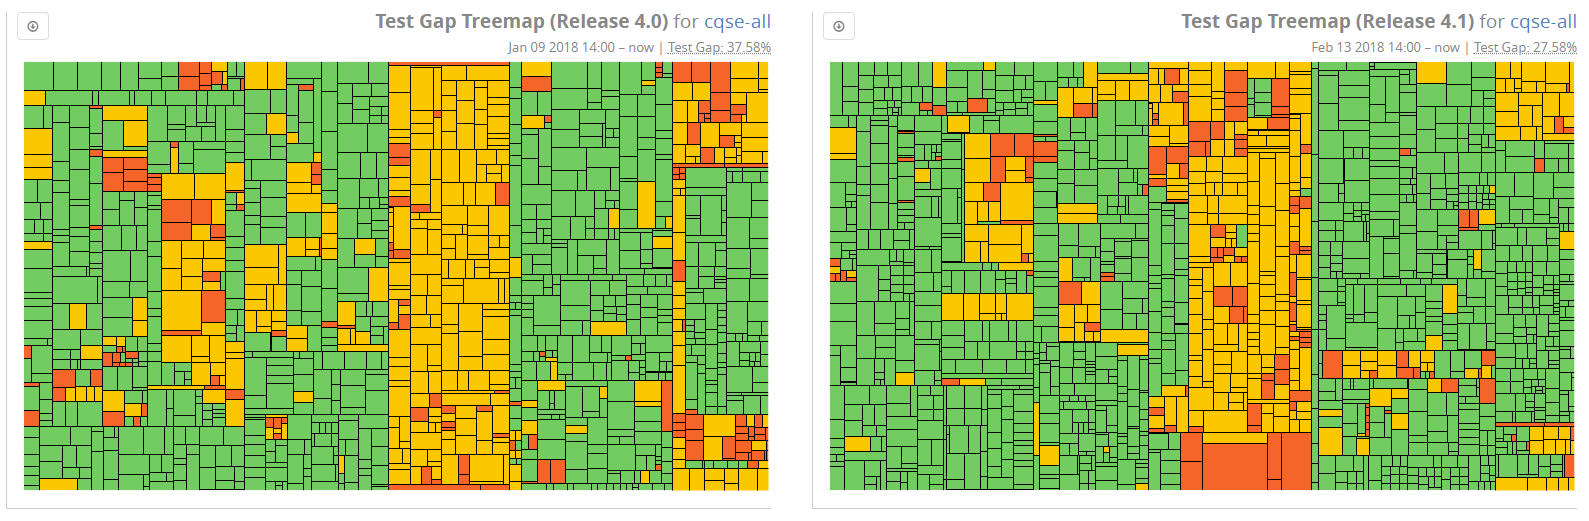 Comparing test gaps between releases 4.0 and 4.1